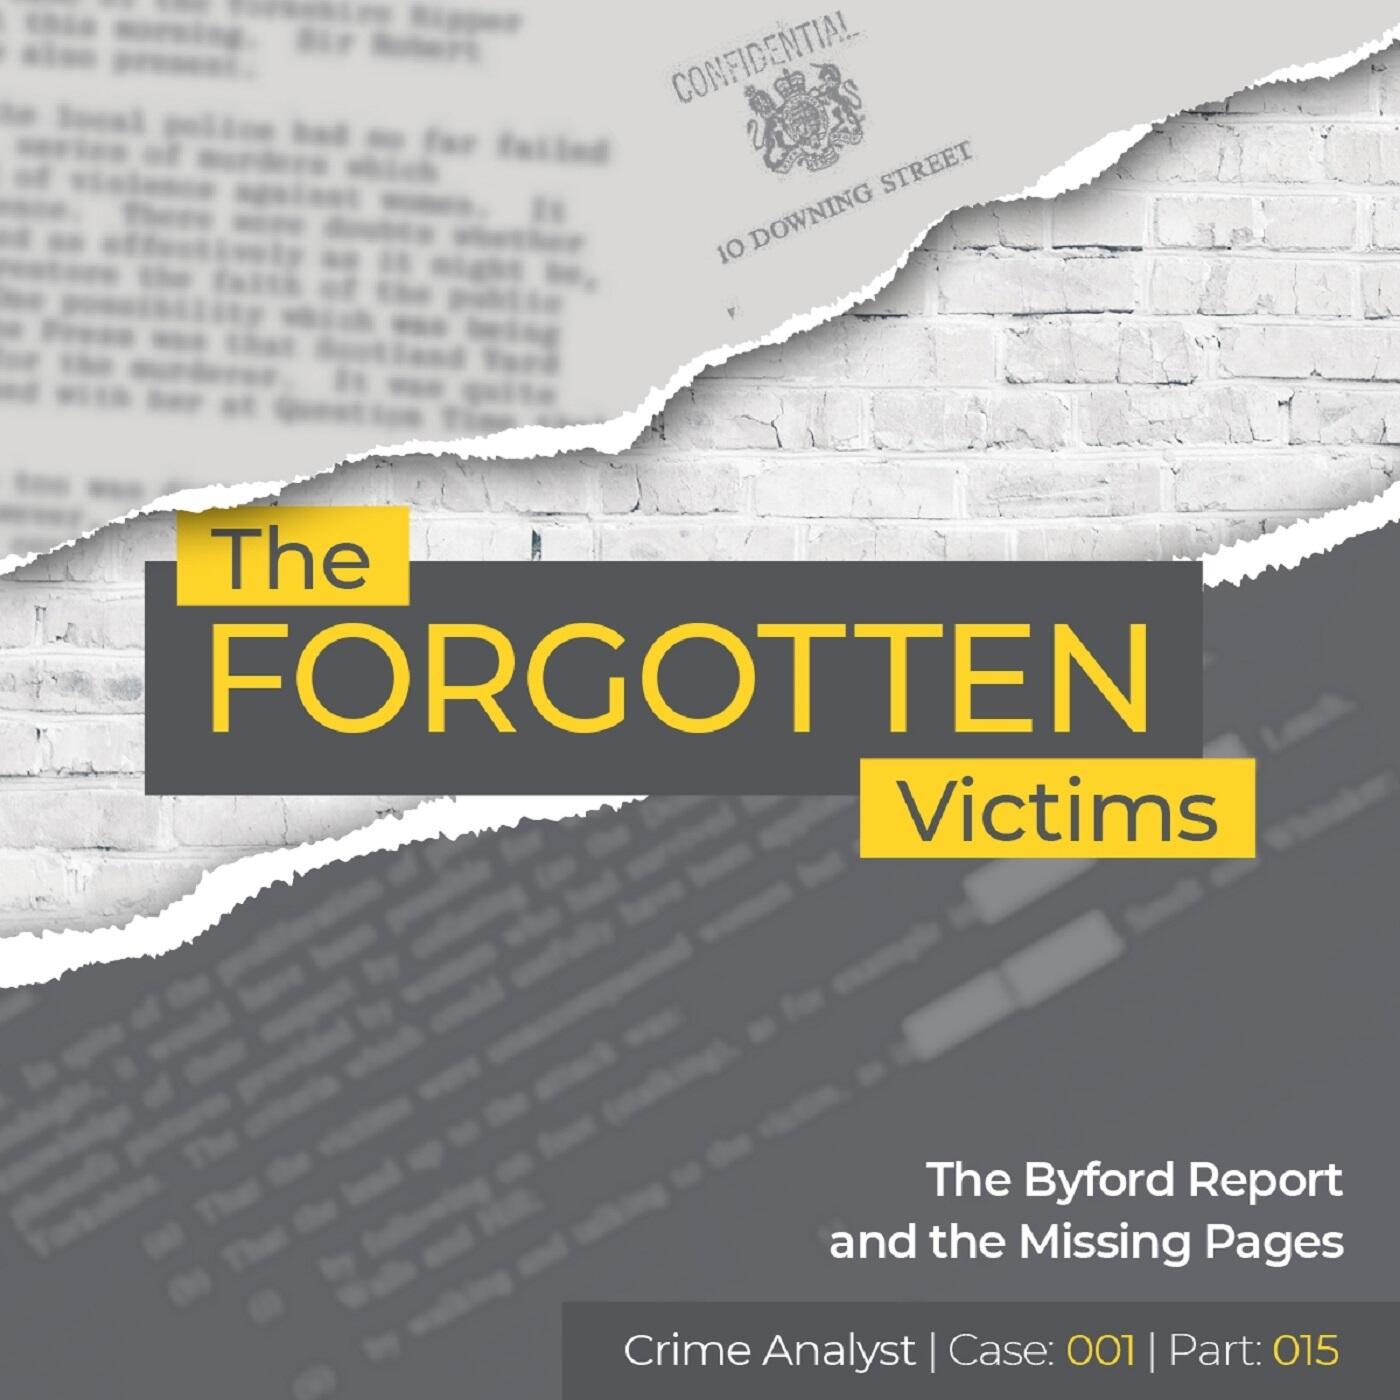 15: The Forgotten Victims | Part 15 | The Byford Report, the Missing Pages and Other Potentially Linked Offences